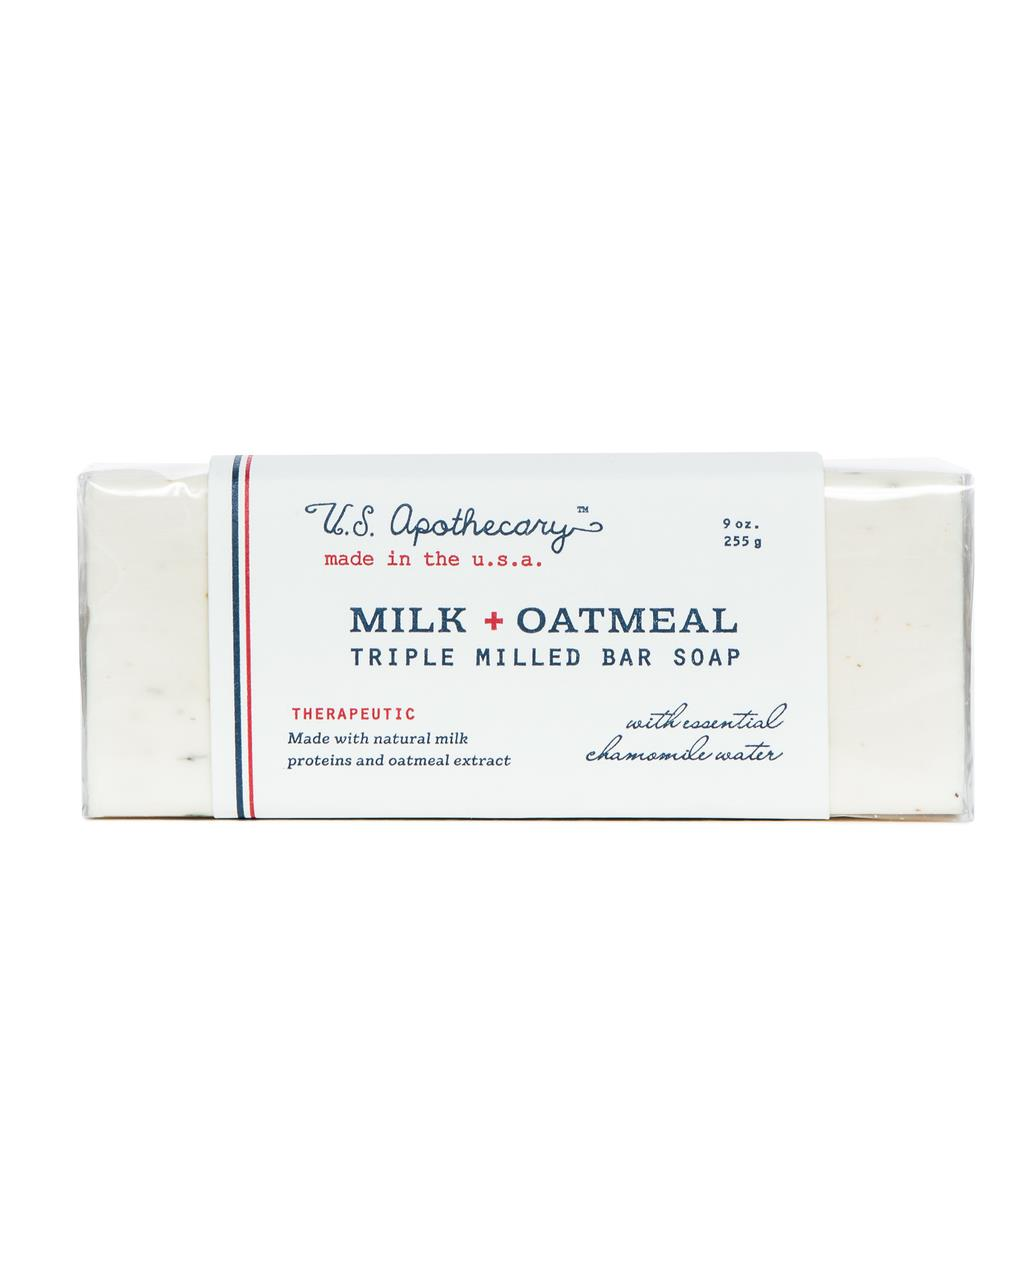 Milk & Oatmeal 9oz. Bar Soap